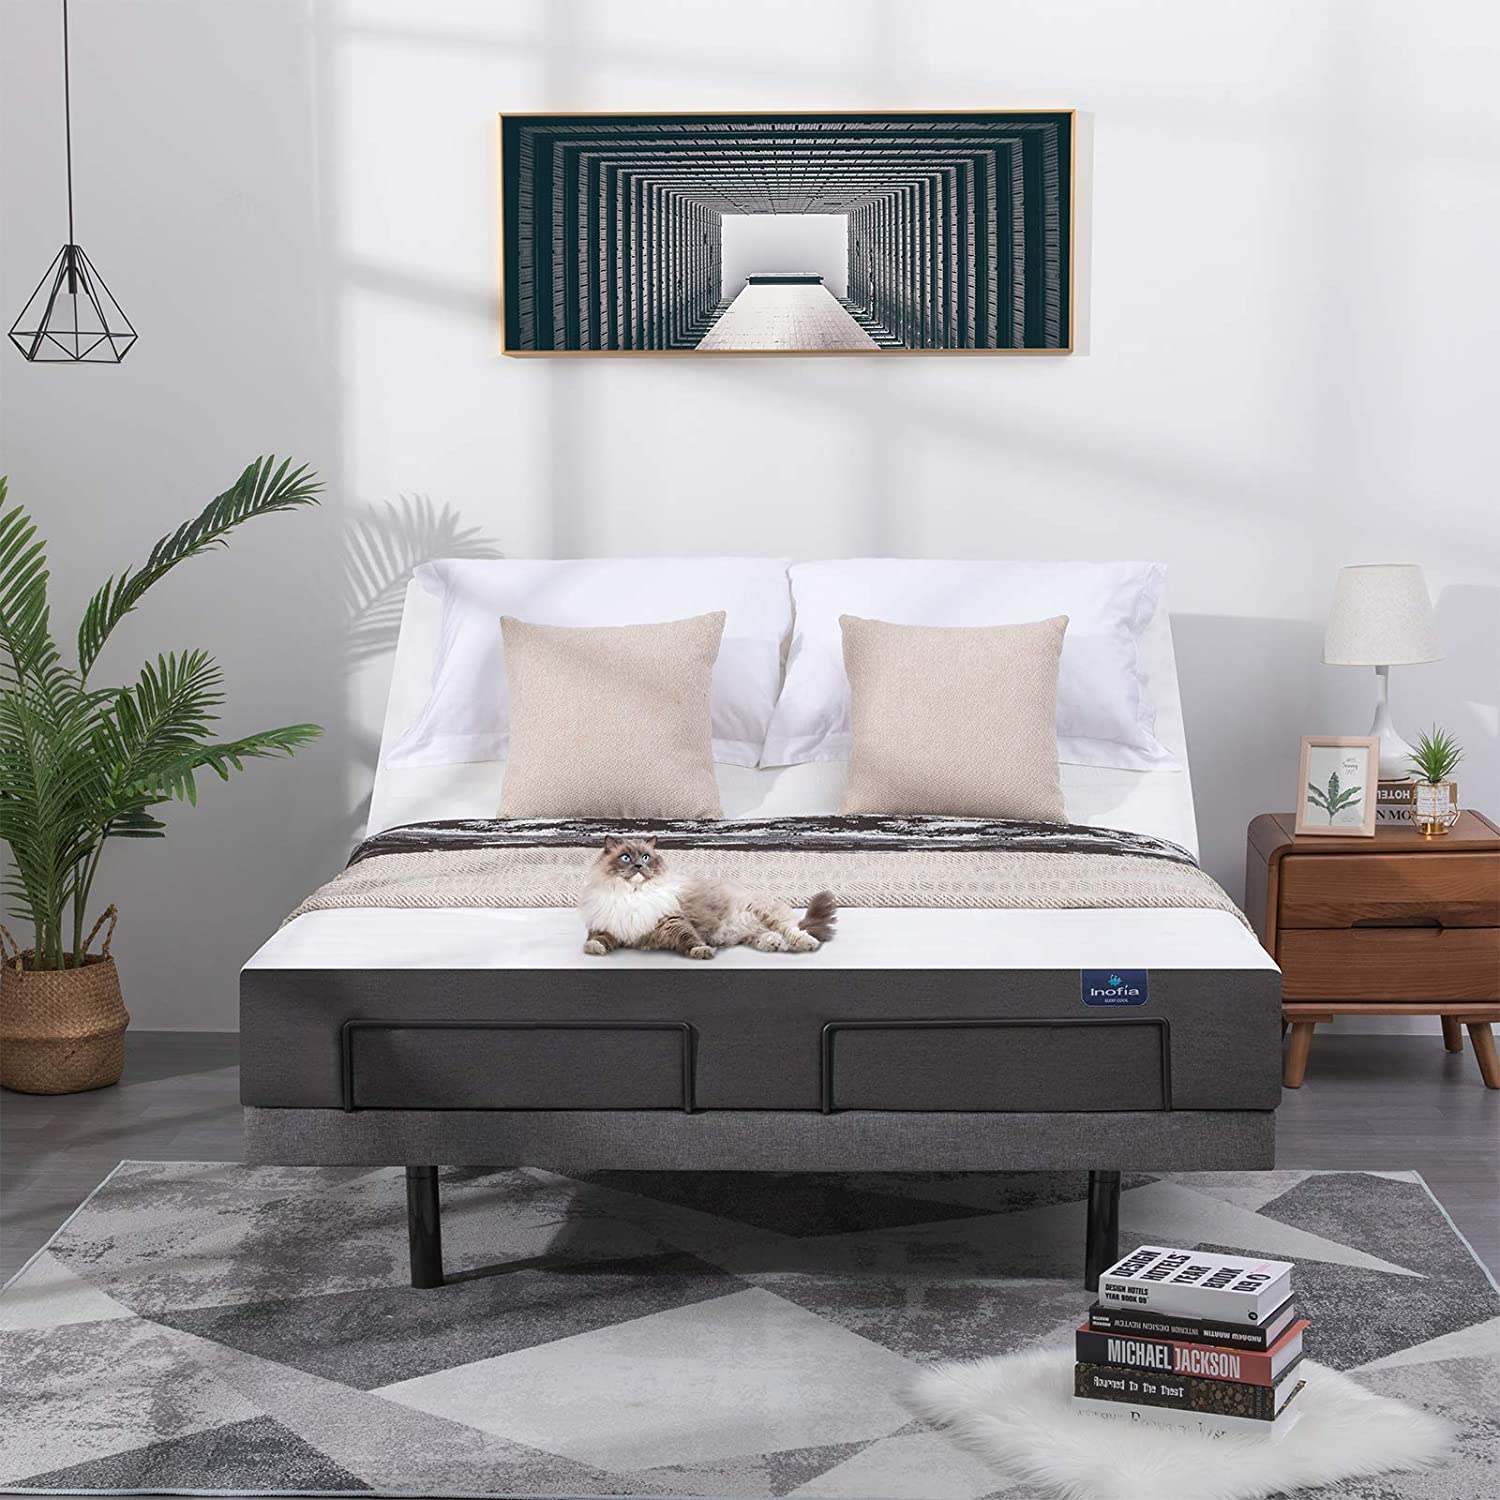 OFFer Inofia Adjustable Bed Frame Queen with Fashion Wirele App Size Control